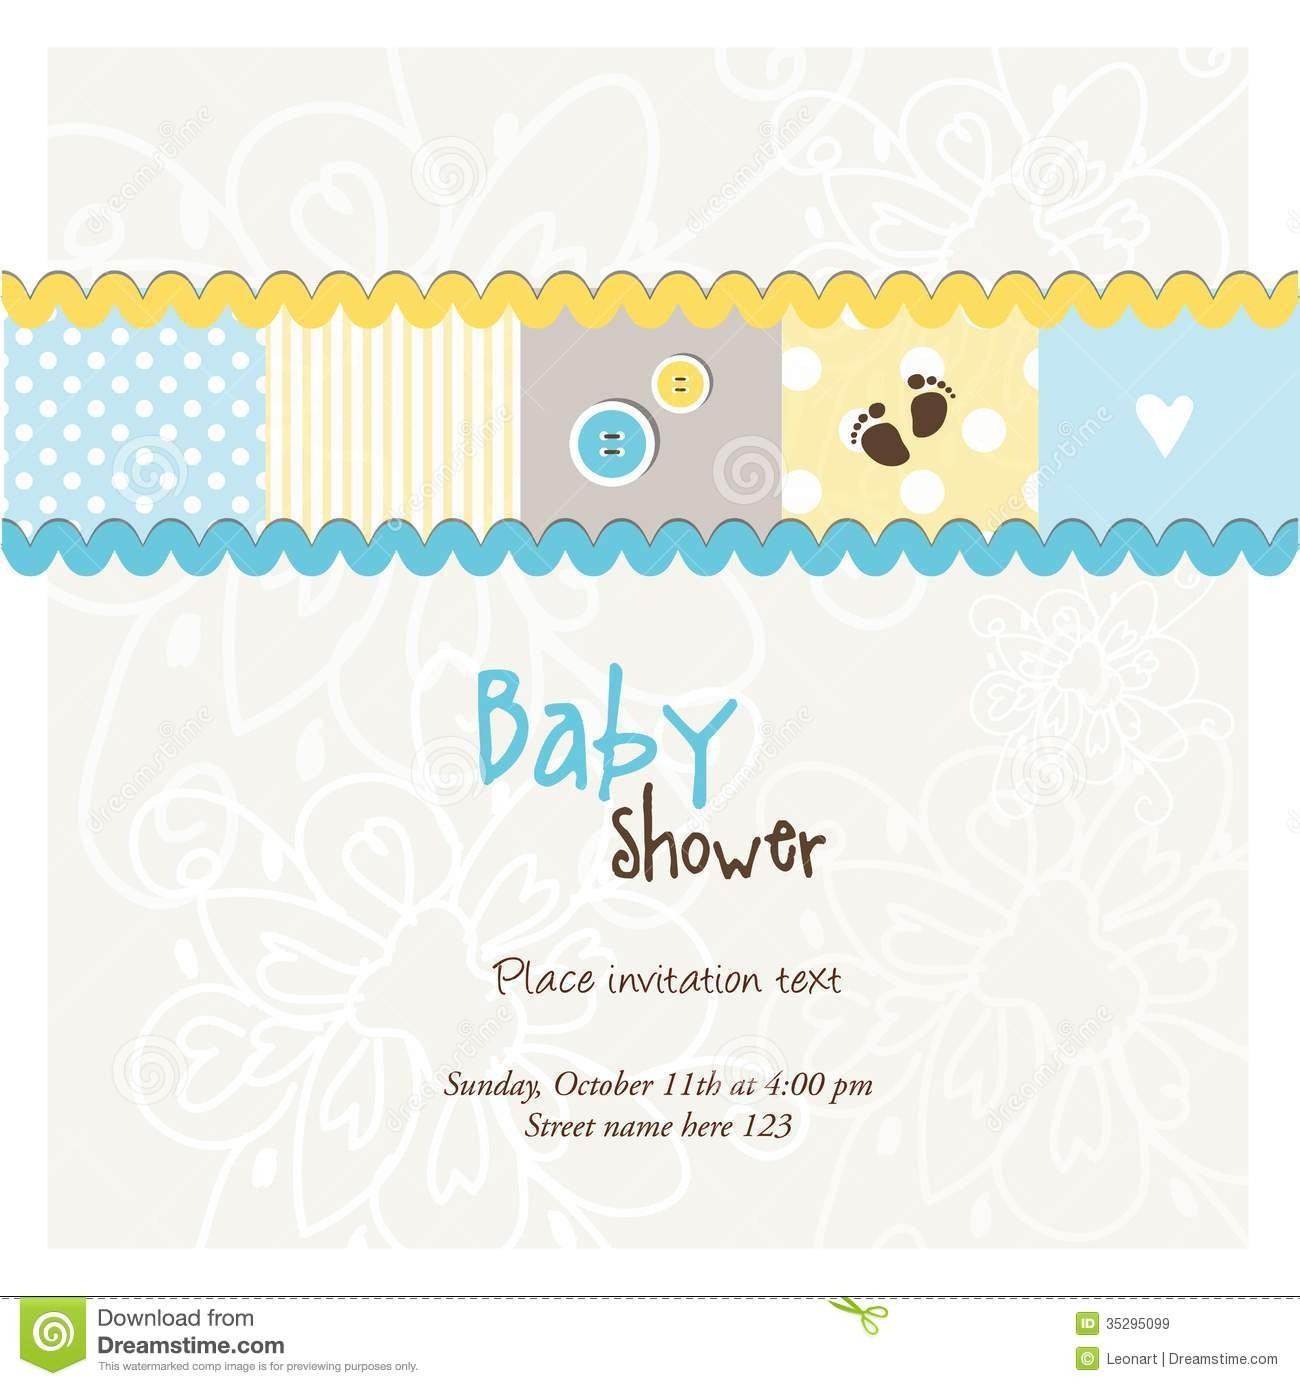 Elite Baby Shower Congratulations Cards Lovely Baby Shower Greeting Cards pertaining to Baby Shower Congratulations